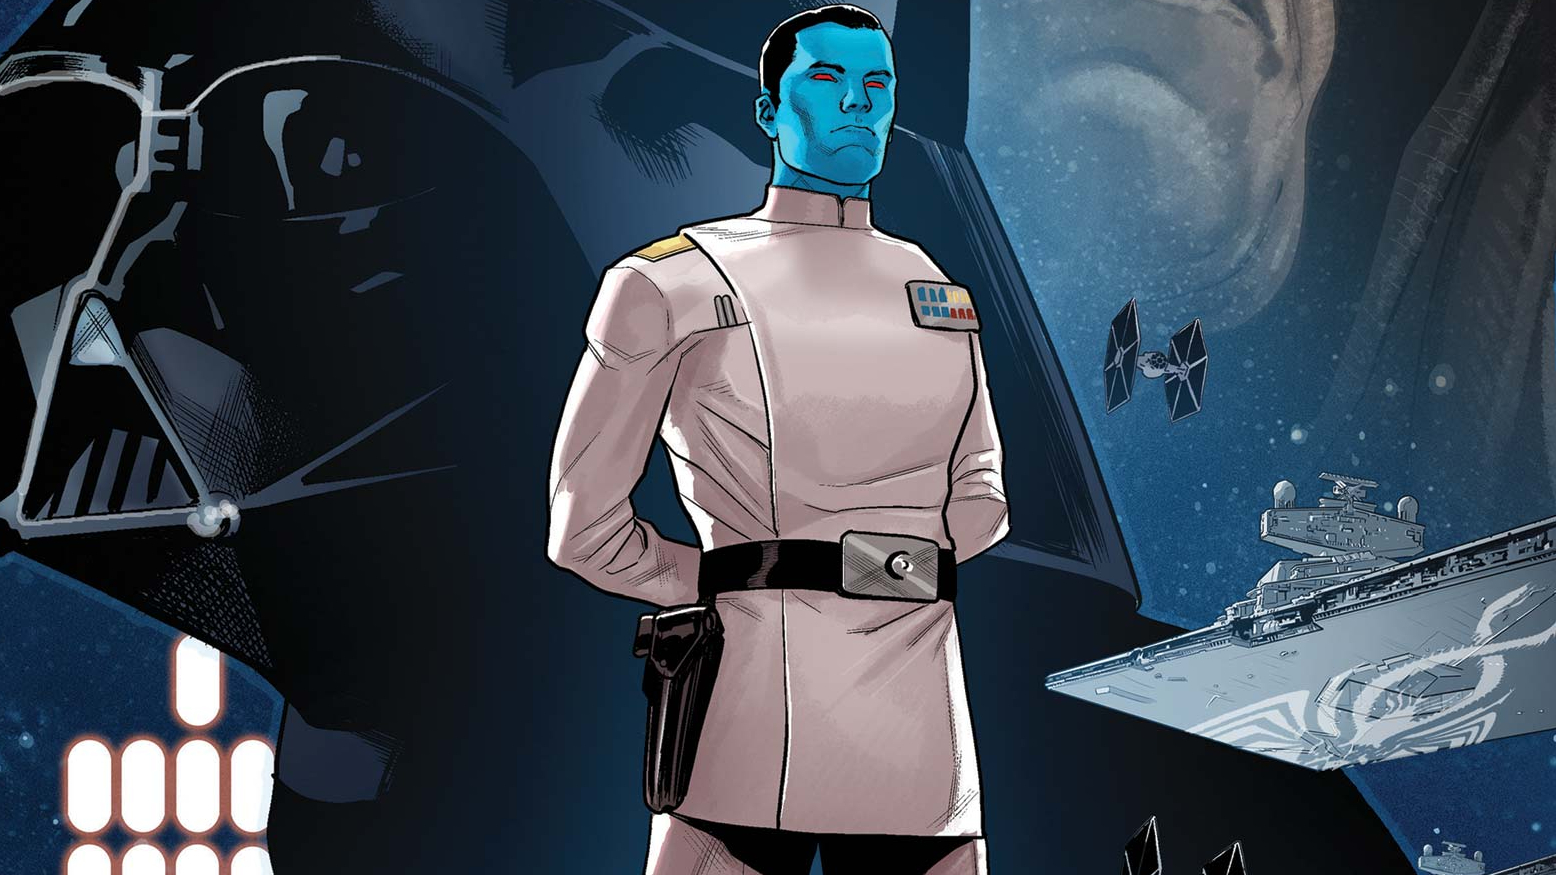 Who Is Grand Admiral Thrawn? Star Wars Master Villain Revealed